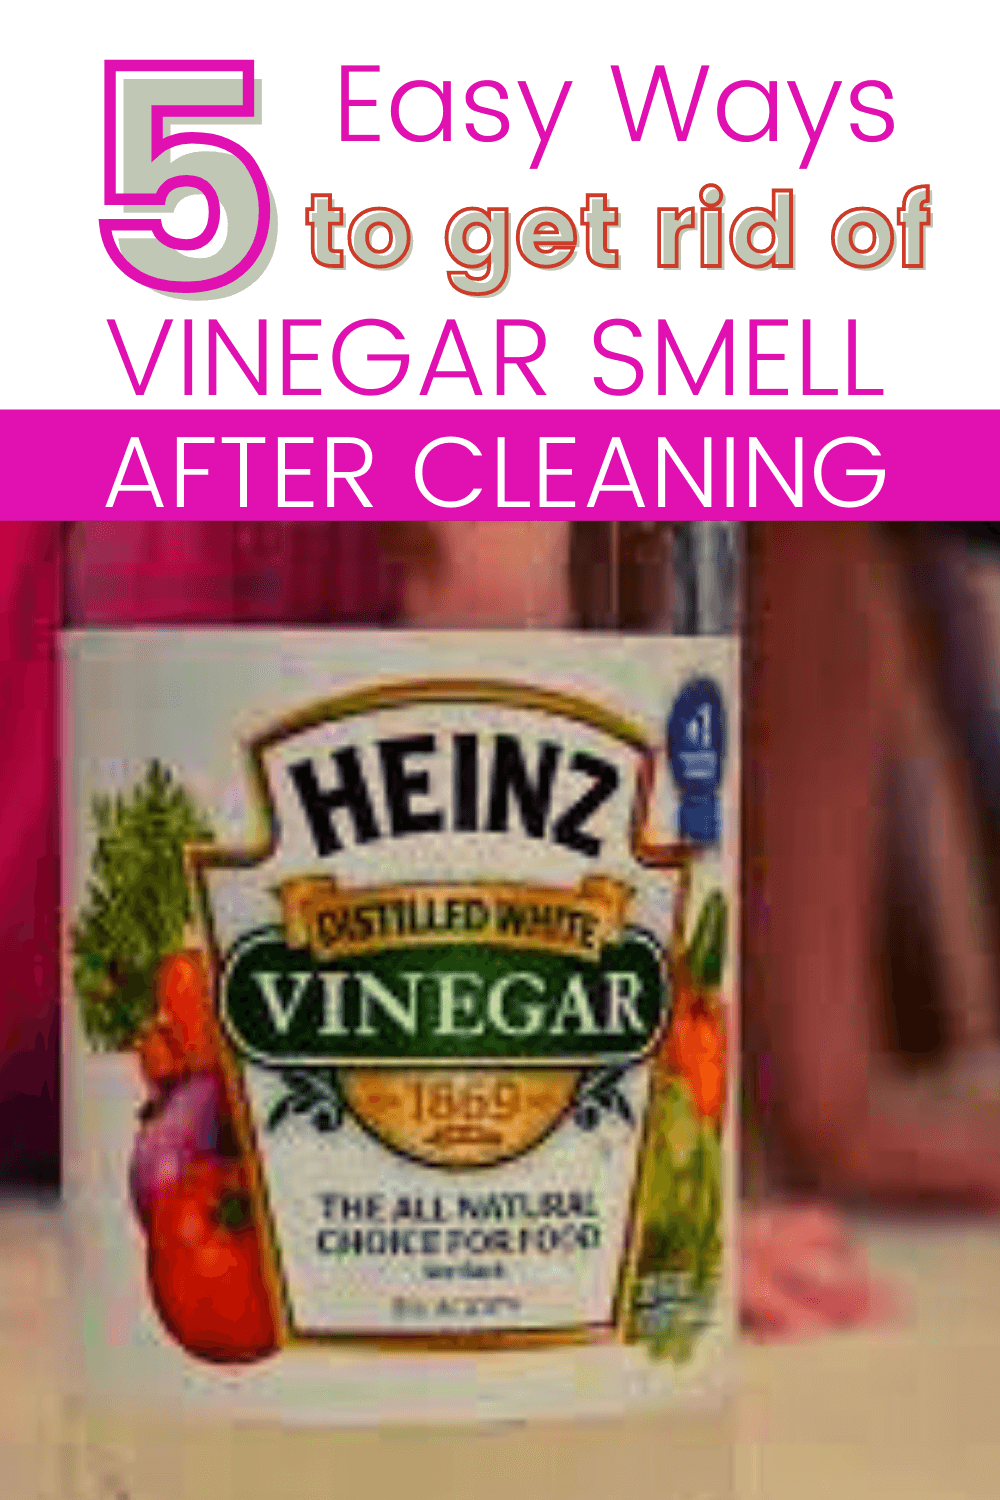 how to get rid of vinegar smell after cleaning